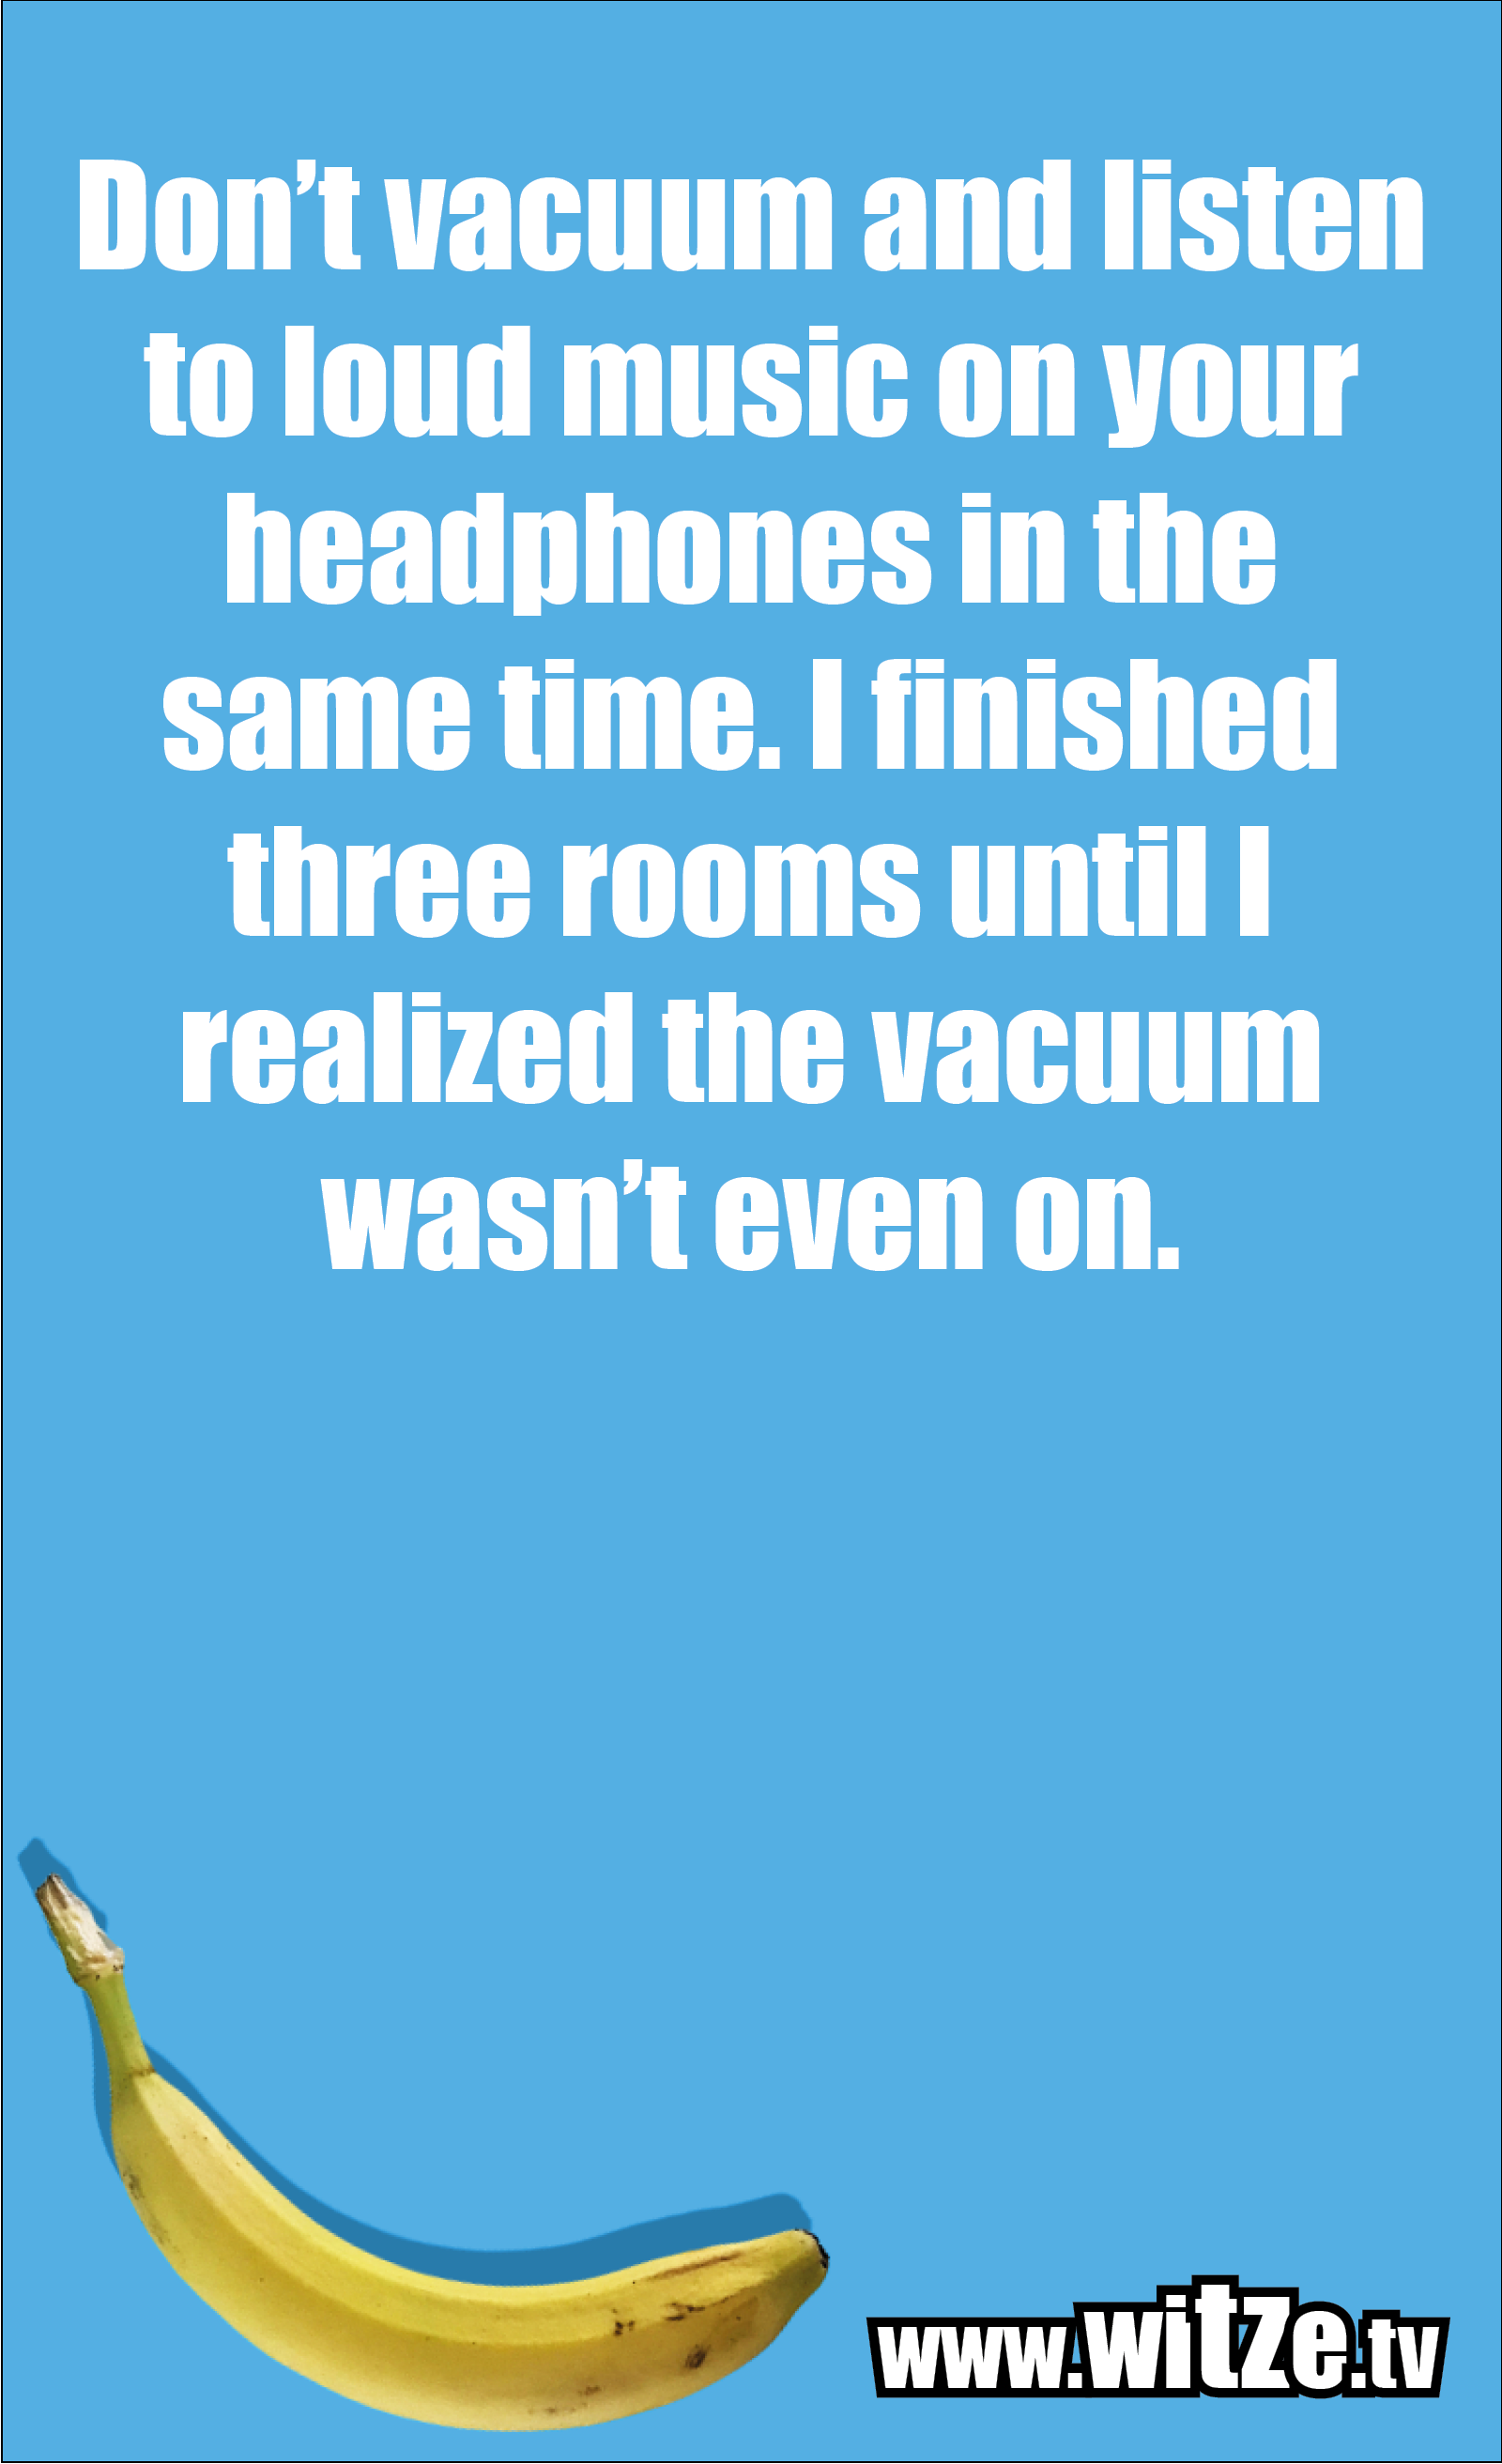 Funny sayings… Don't vacuum and listen to loud music on your headphones in the same time. I finished three rooms until I realized the vacuum wasn't even on.